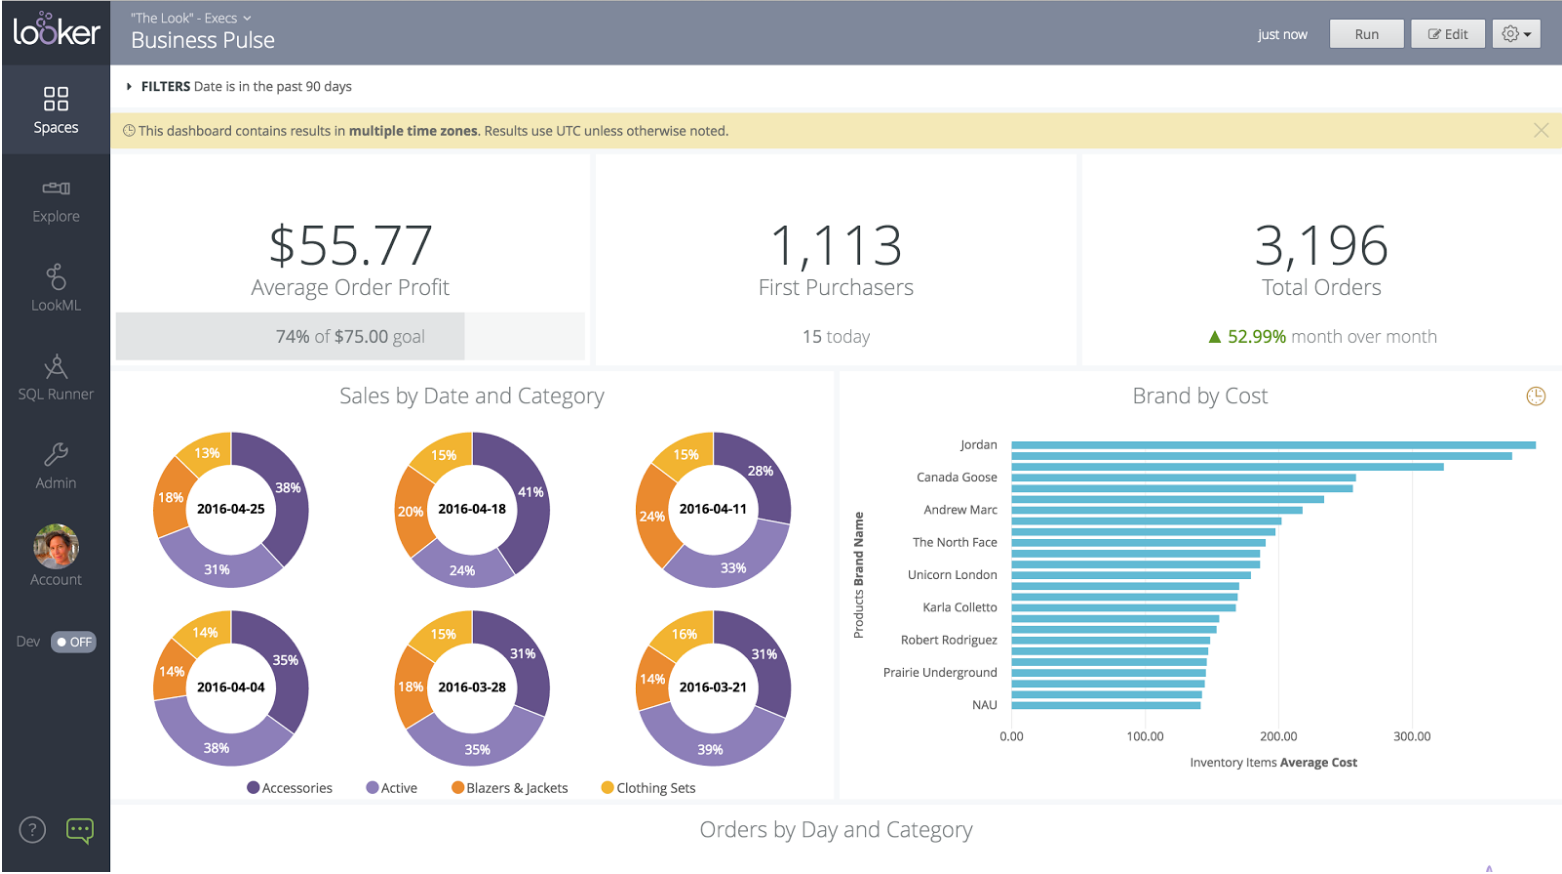 Business Pulse 2 Dashboard